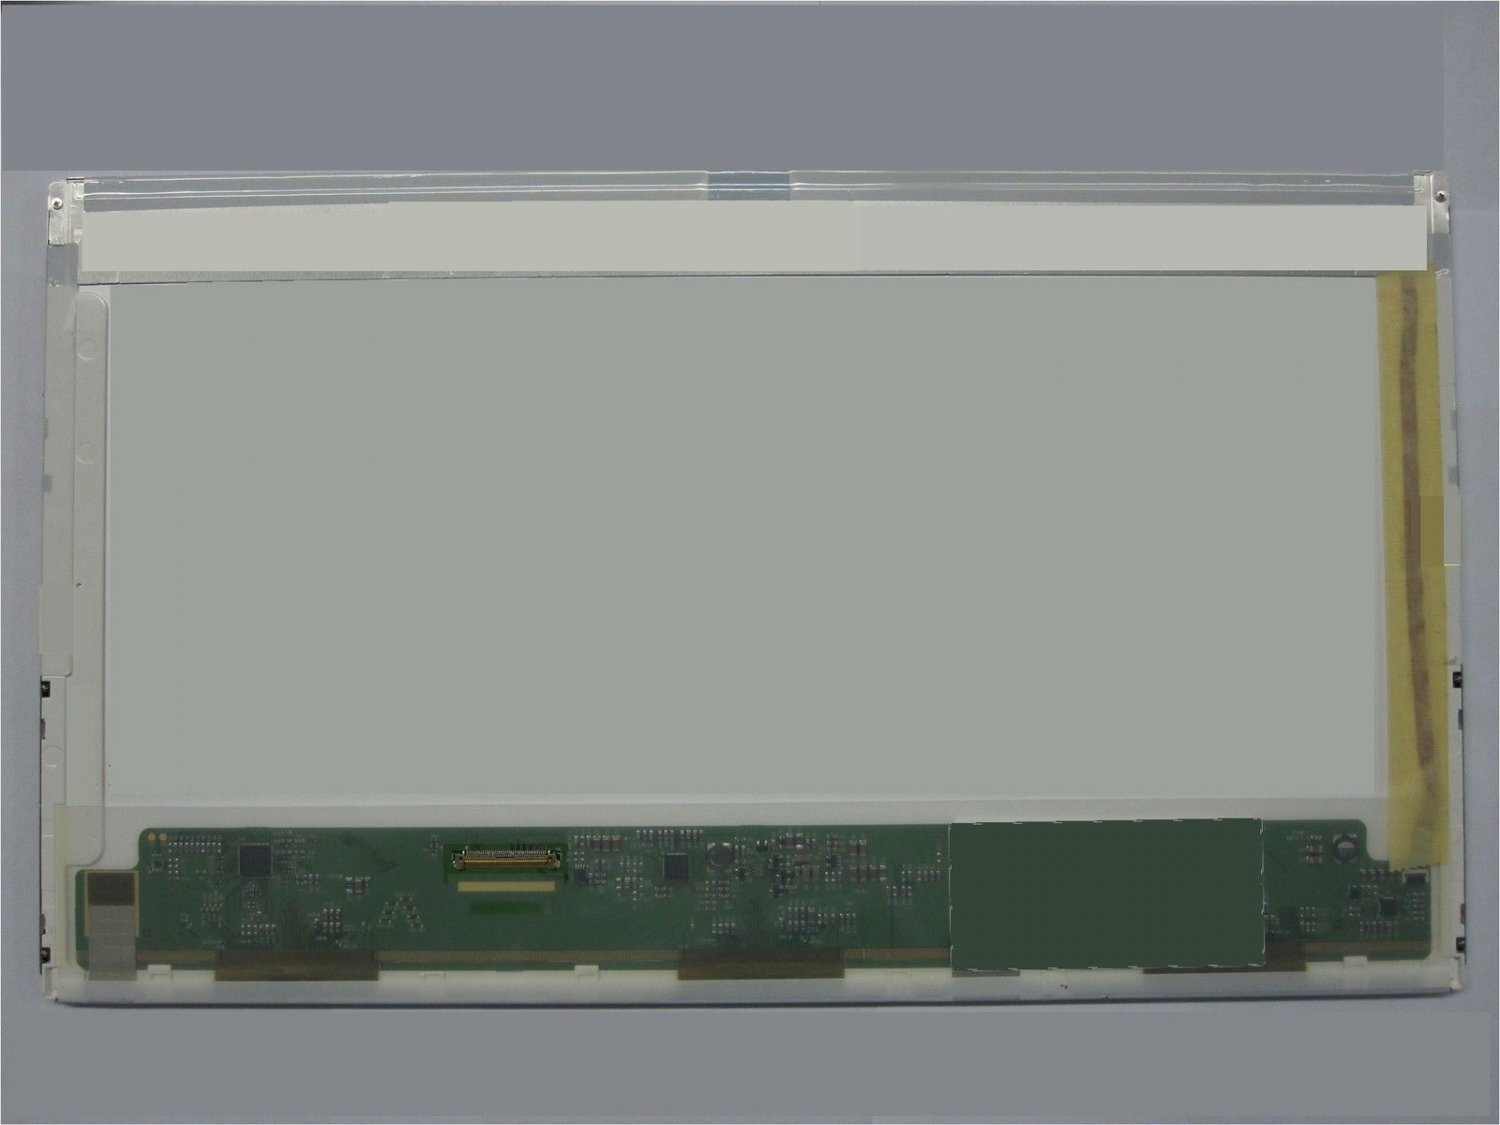 OEM LAPTOP LCD SCREEN FOR AU OPTRONICS B156XW02 V.8 BOTTOM LEFT CONNECTOR 15.6